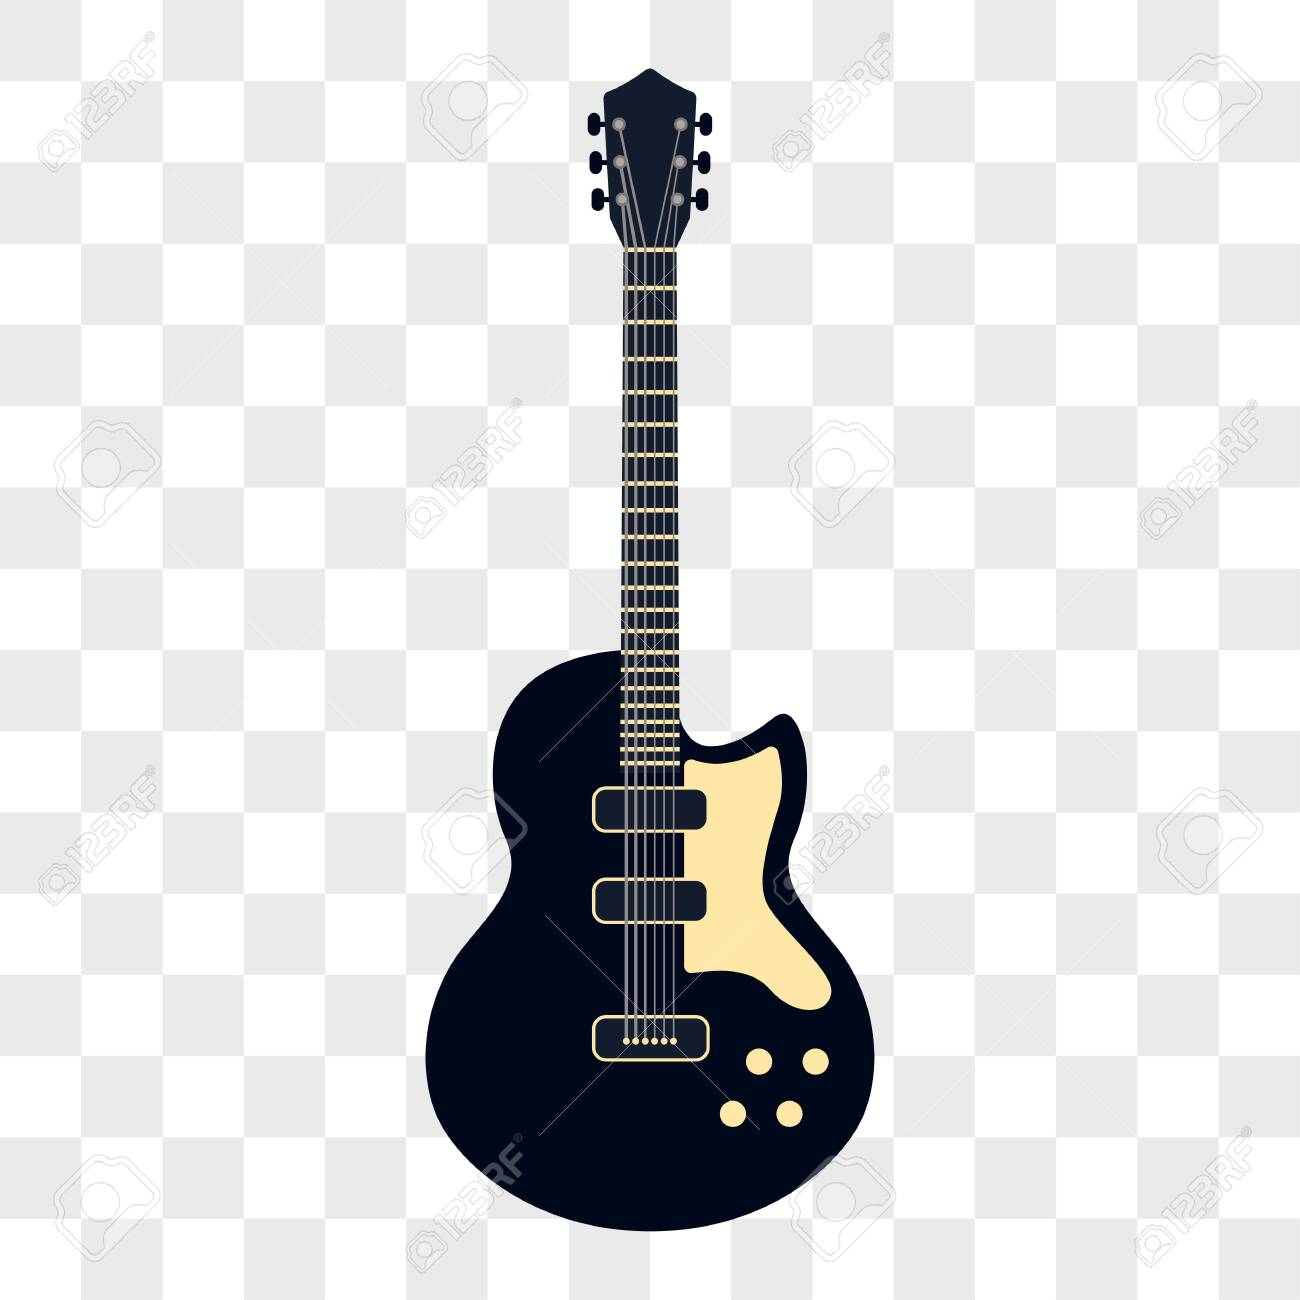 Acoustic Guitar Musical Instruments Isolated On Transparent Background Royalty Free Cliparts Vectors And Stock Illustration Image 124533039